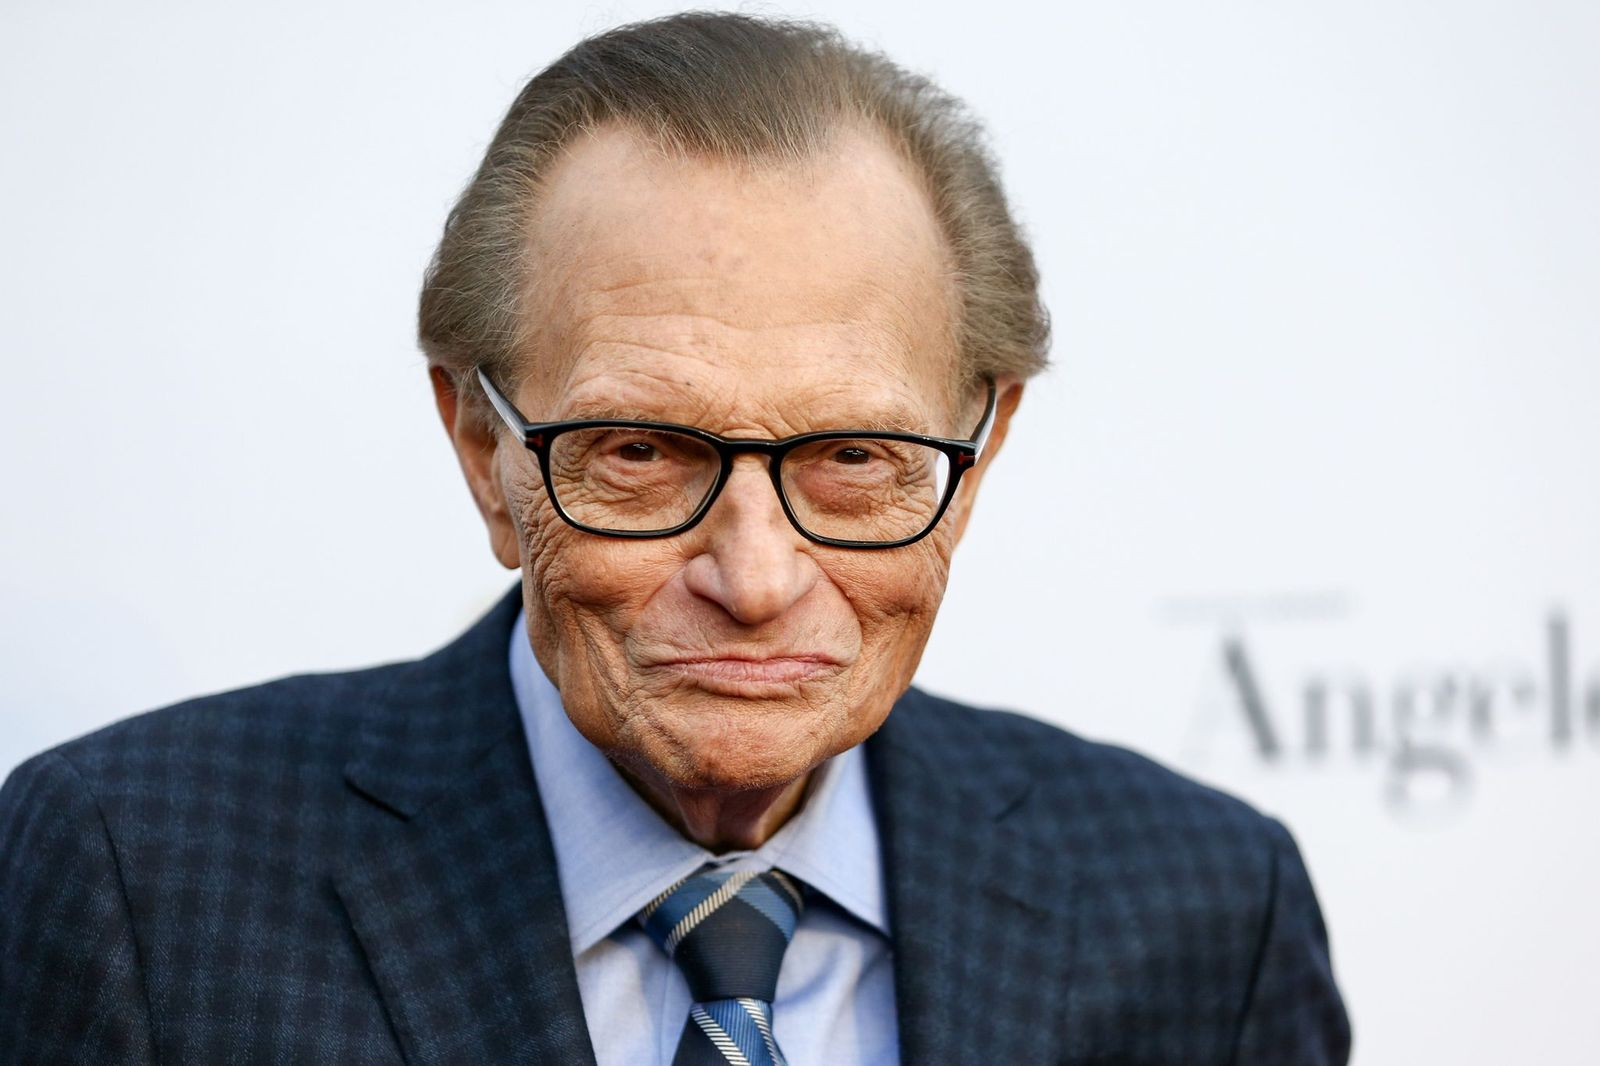 Larry King attends Larry King's 60th Broadcasting Anniversary Event at HYDE Sunset: Kitchen + Cocktails on May 1, 2017 in West Hollywood, California. | Photo: Getty Images